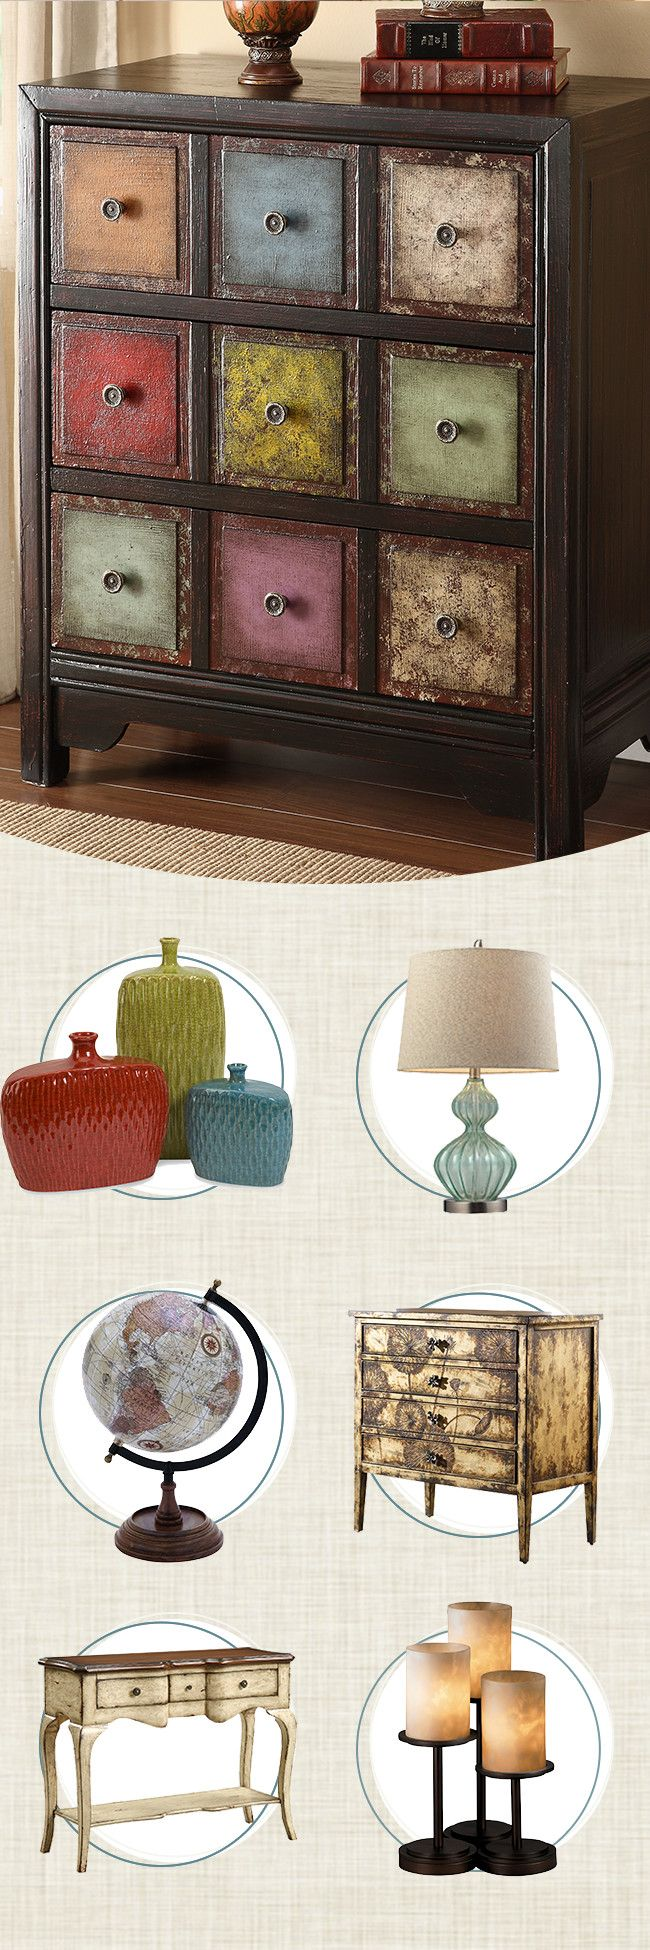 revamp any room with comfortable updates and stylish additions accent chests and cabinets seamlessly combine - Accent Chests